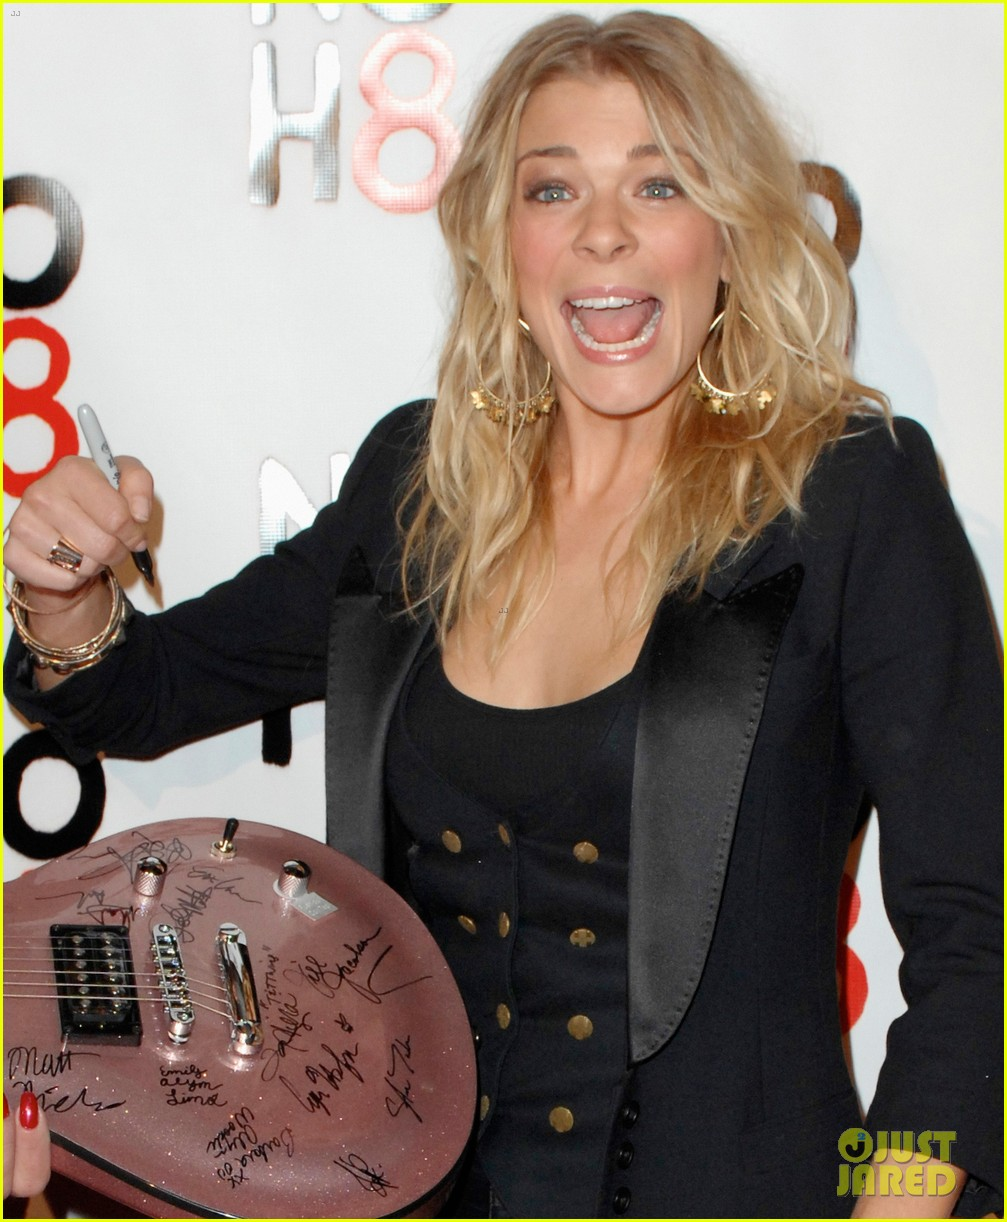 leann rimes noh8 campaigns 3 year anniversary celebration 10